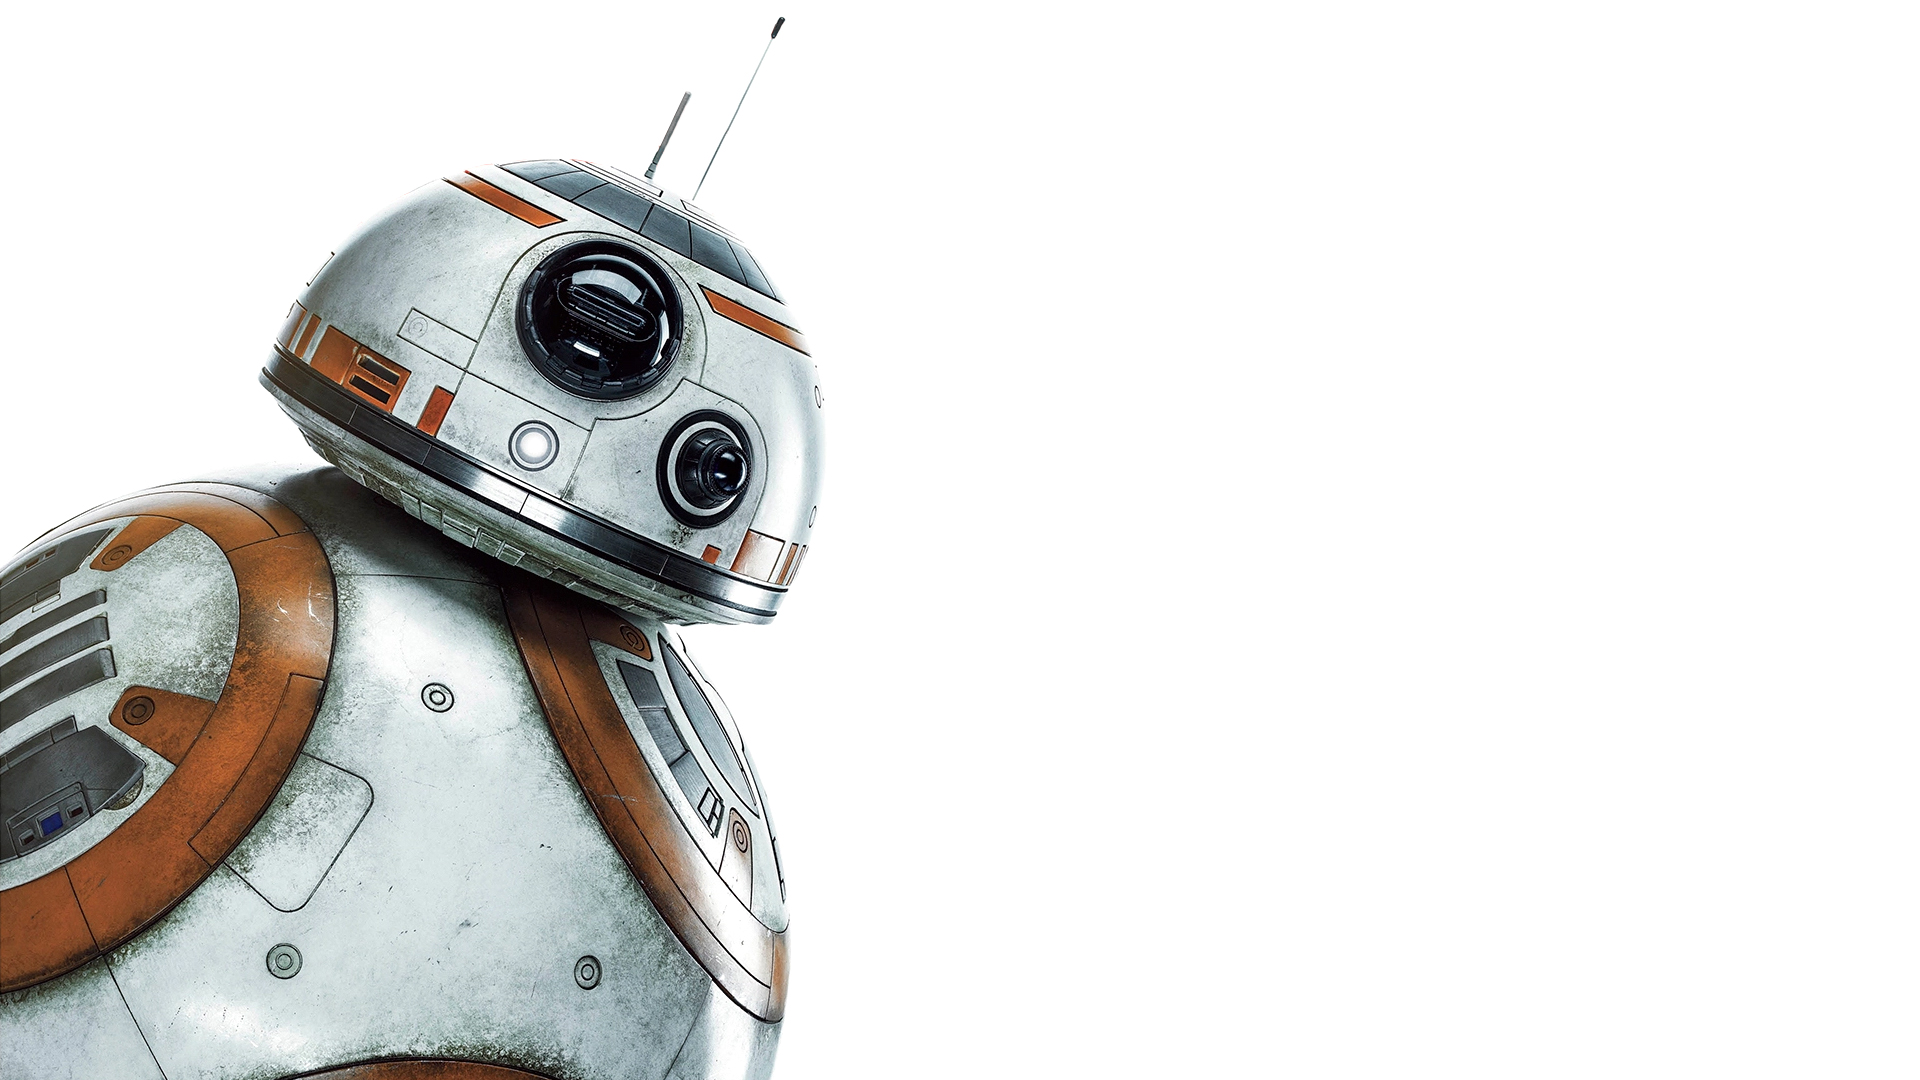 bb8 wallpaper hd - photo #15